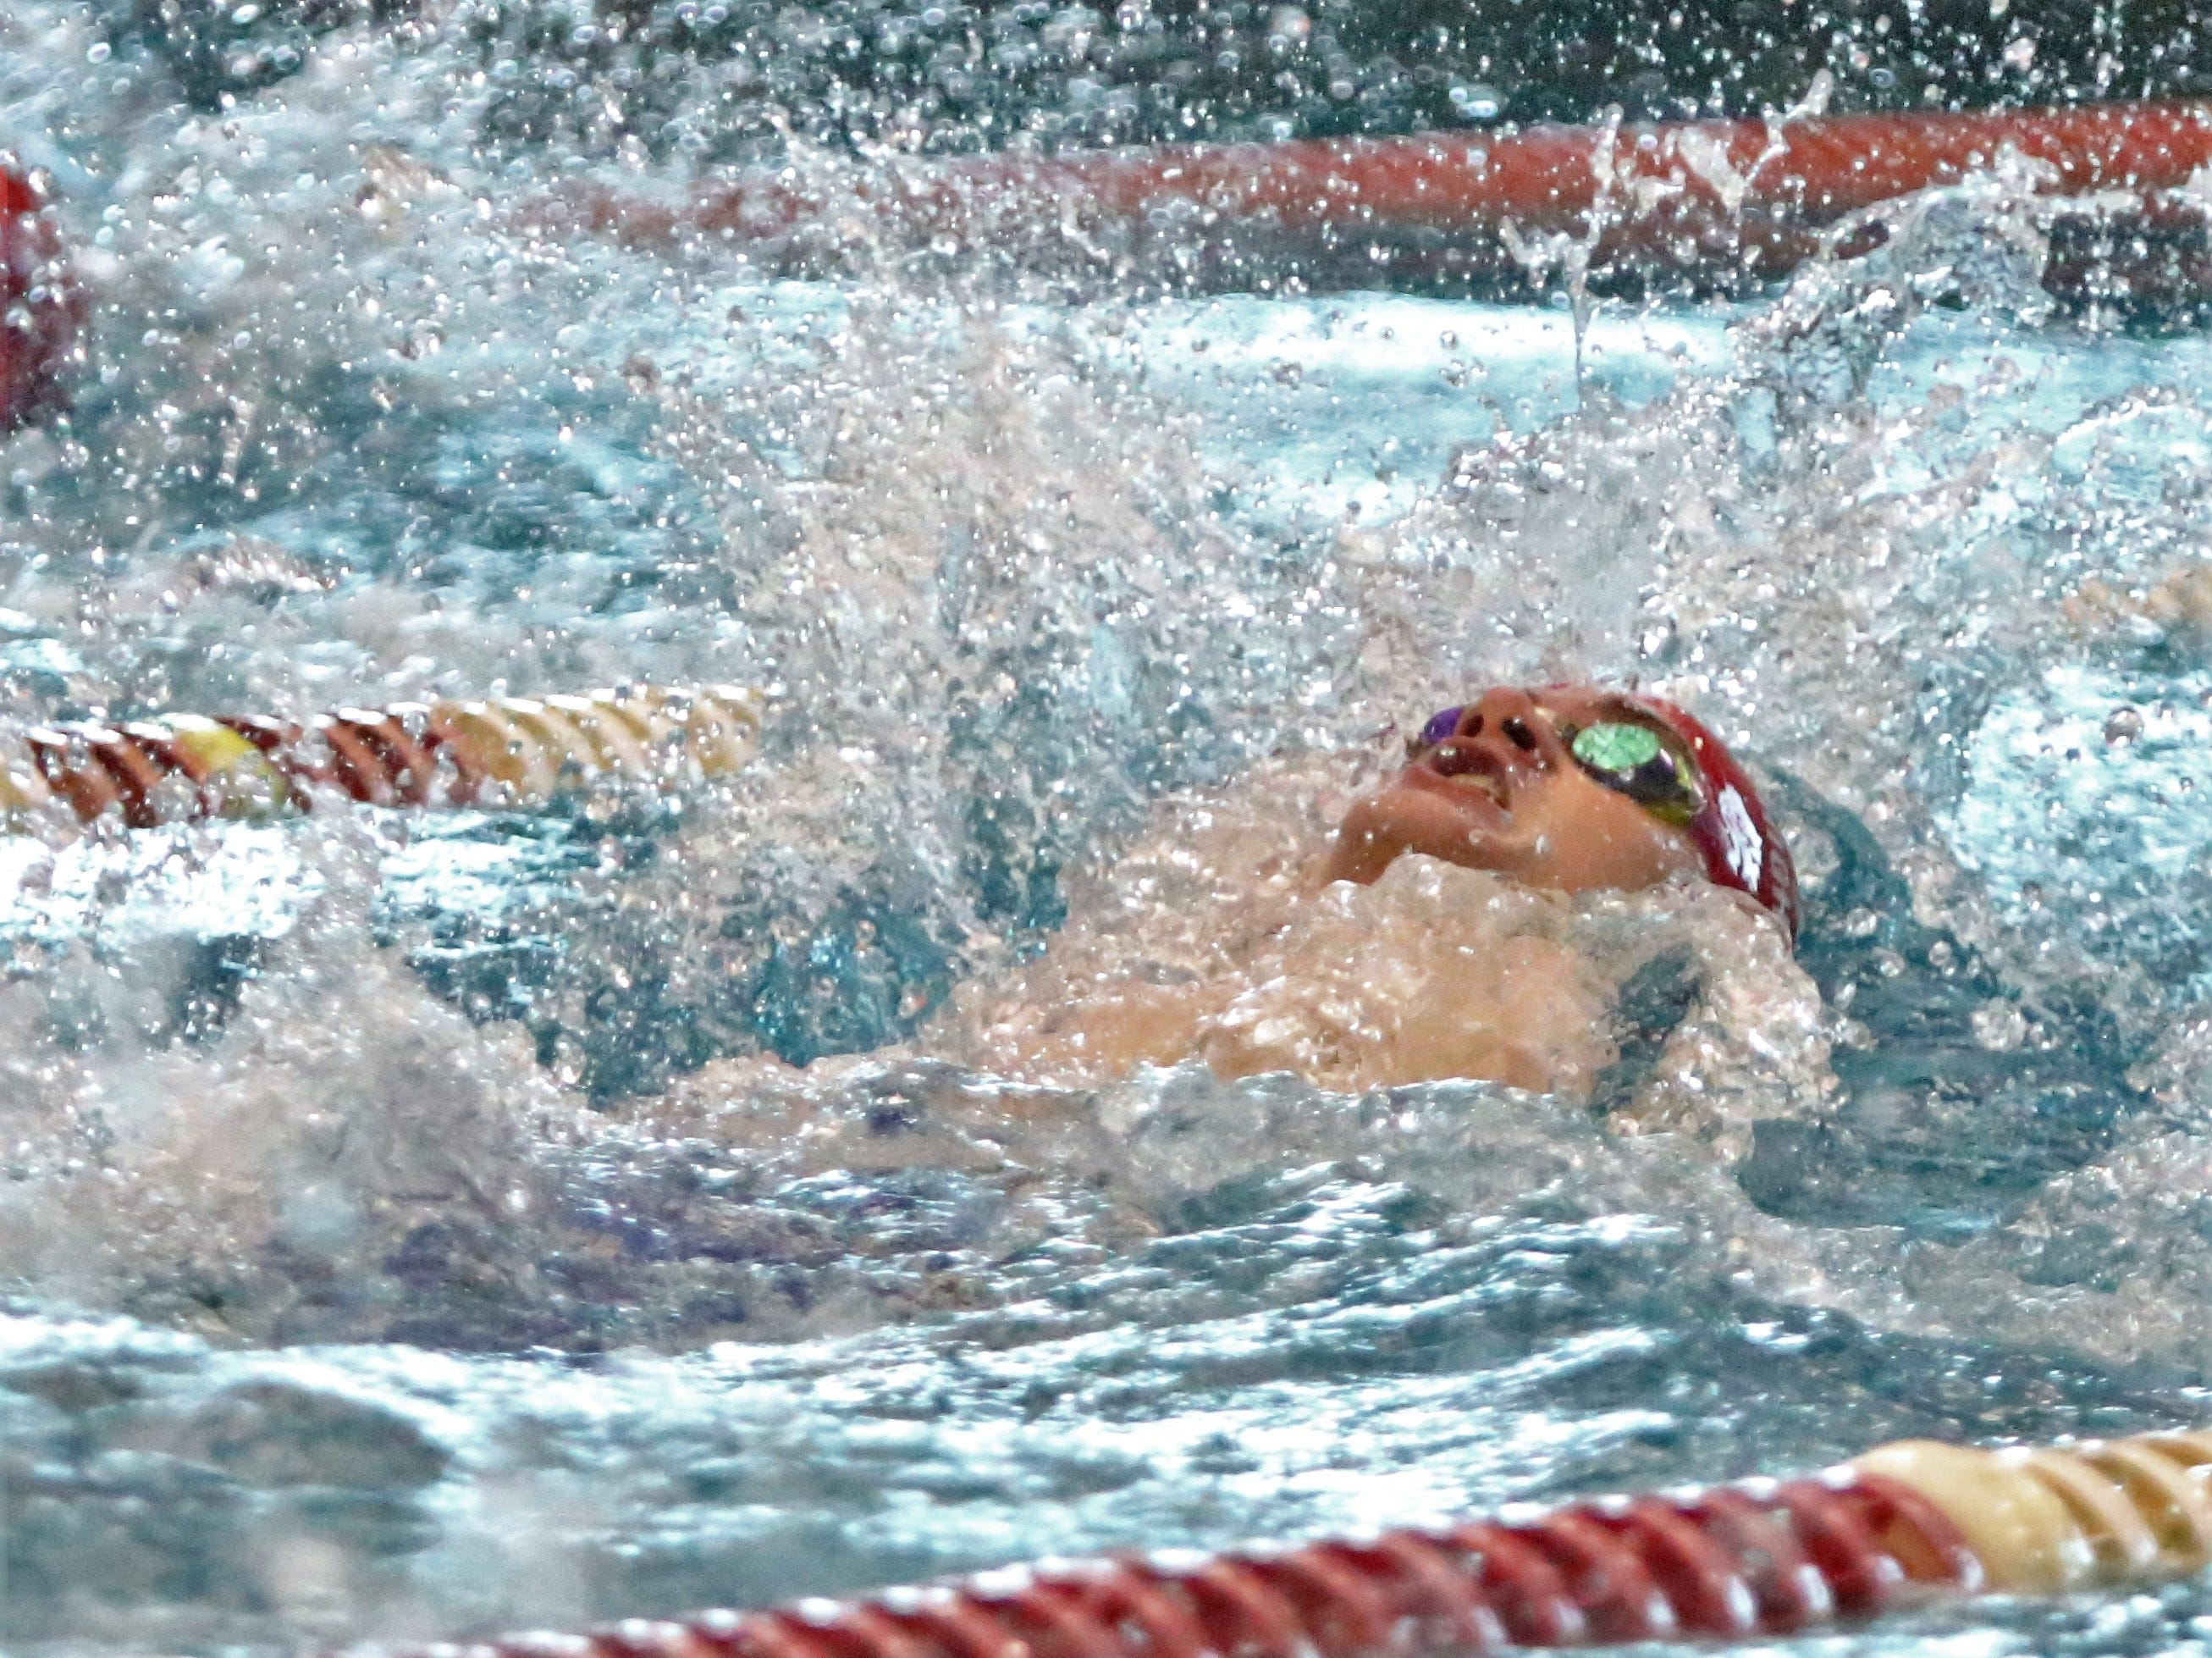 Homestead's Tyler Brown competes in the 100 yard backstroke at the WIAA sectional meet at Homestead High School on Feb. 9, 2019.